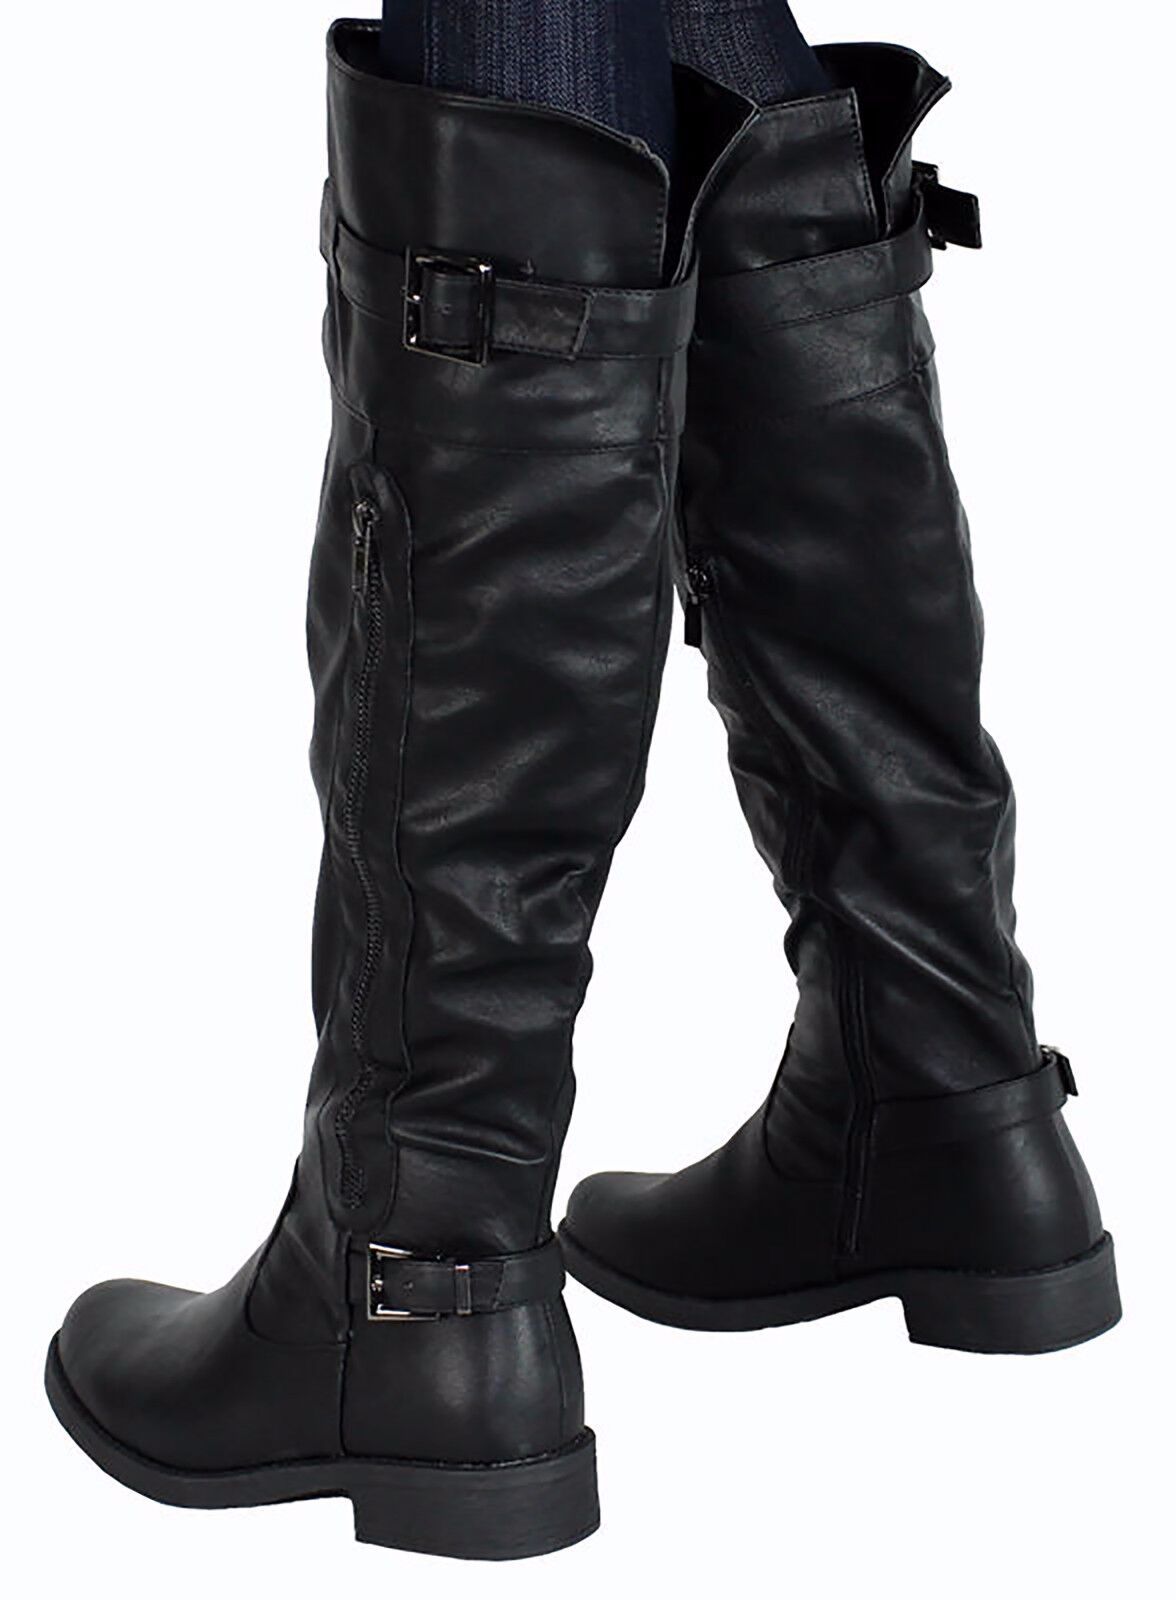 Women Over the Knee Buckles Low Flat Heel Riding Dress Boots Strap Faux Leather